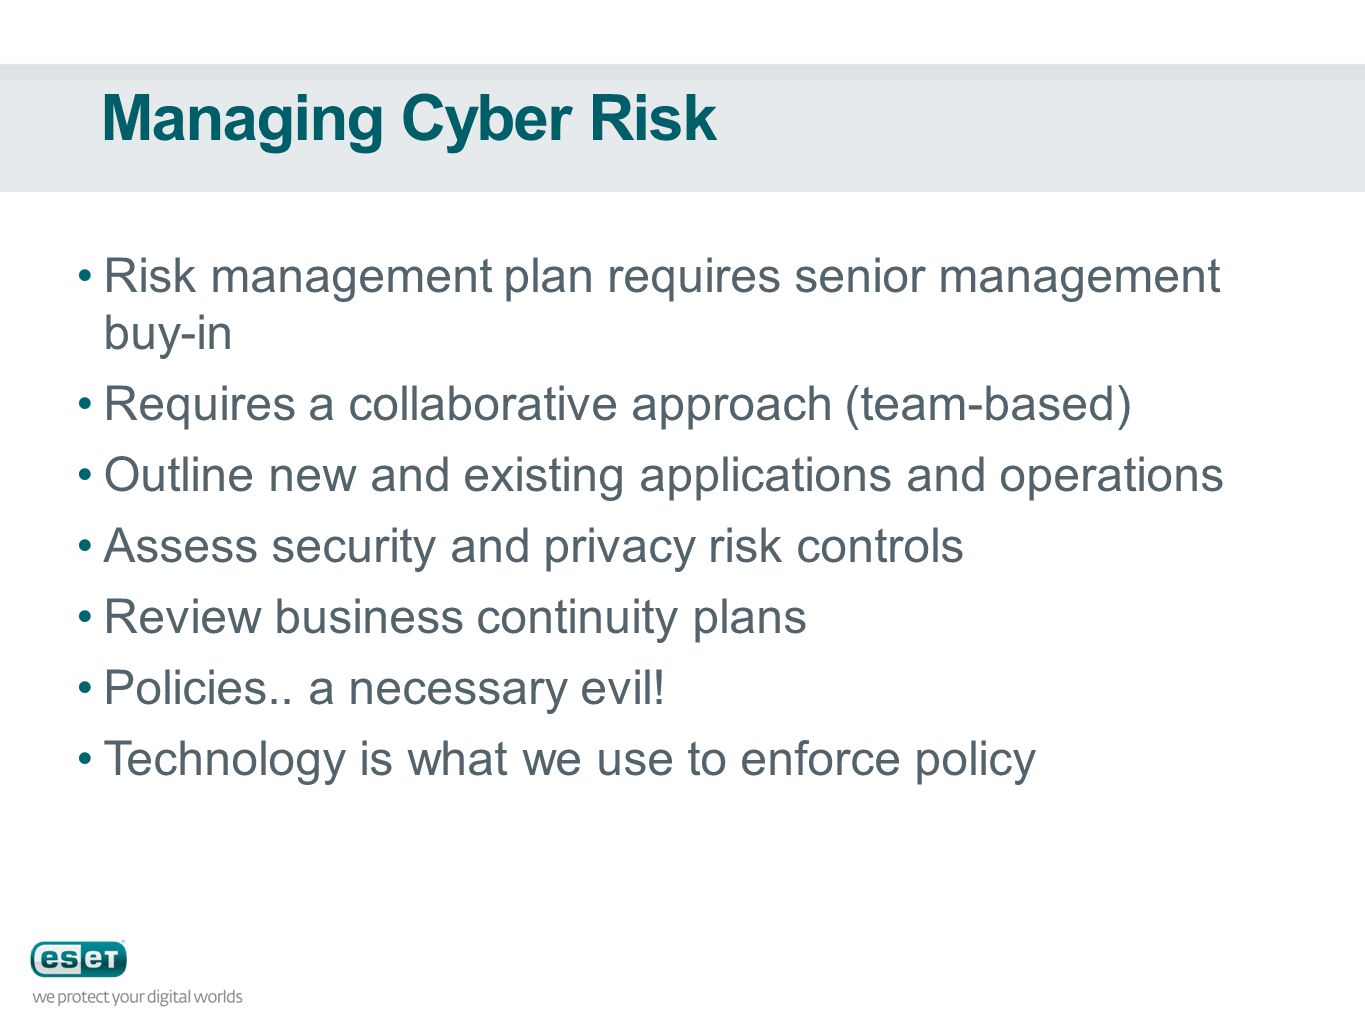 Managing Cyber Risk Risk management plan requires senior management buy-in Requires a collaborative approach (team-based) Outline new and existing applications and operations Assess security and privacy risk controls Review business continuity plans Policies..